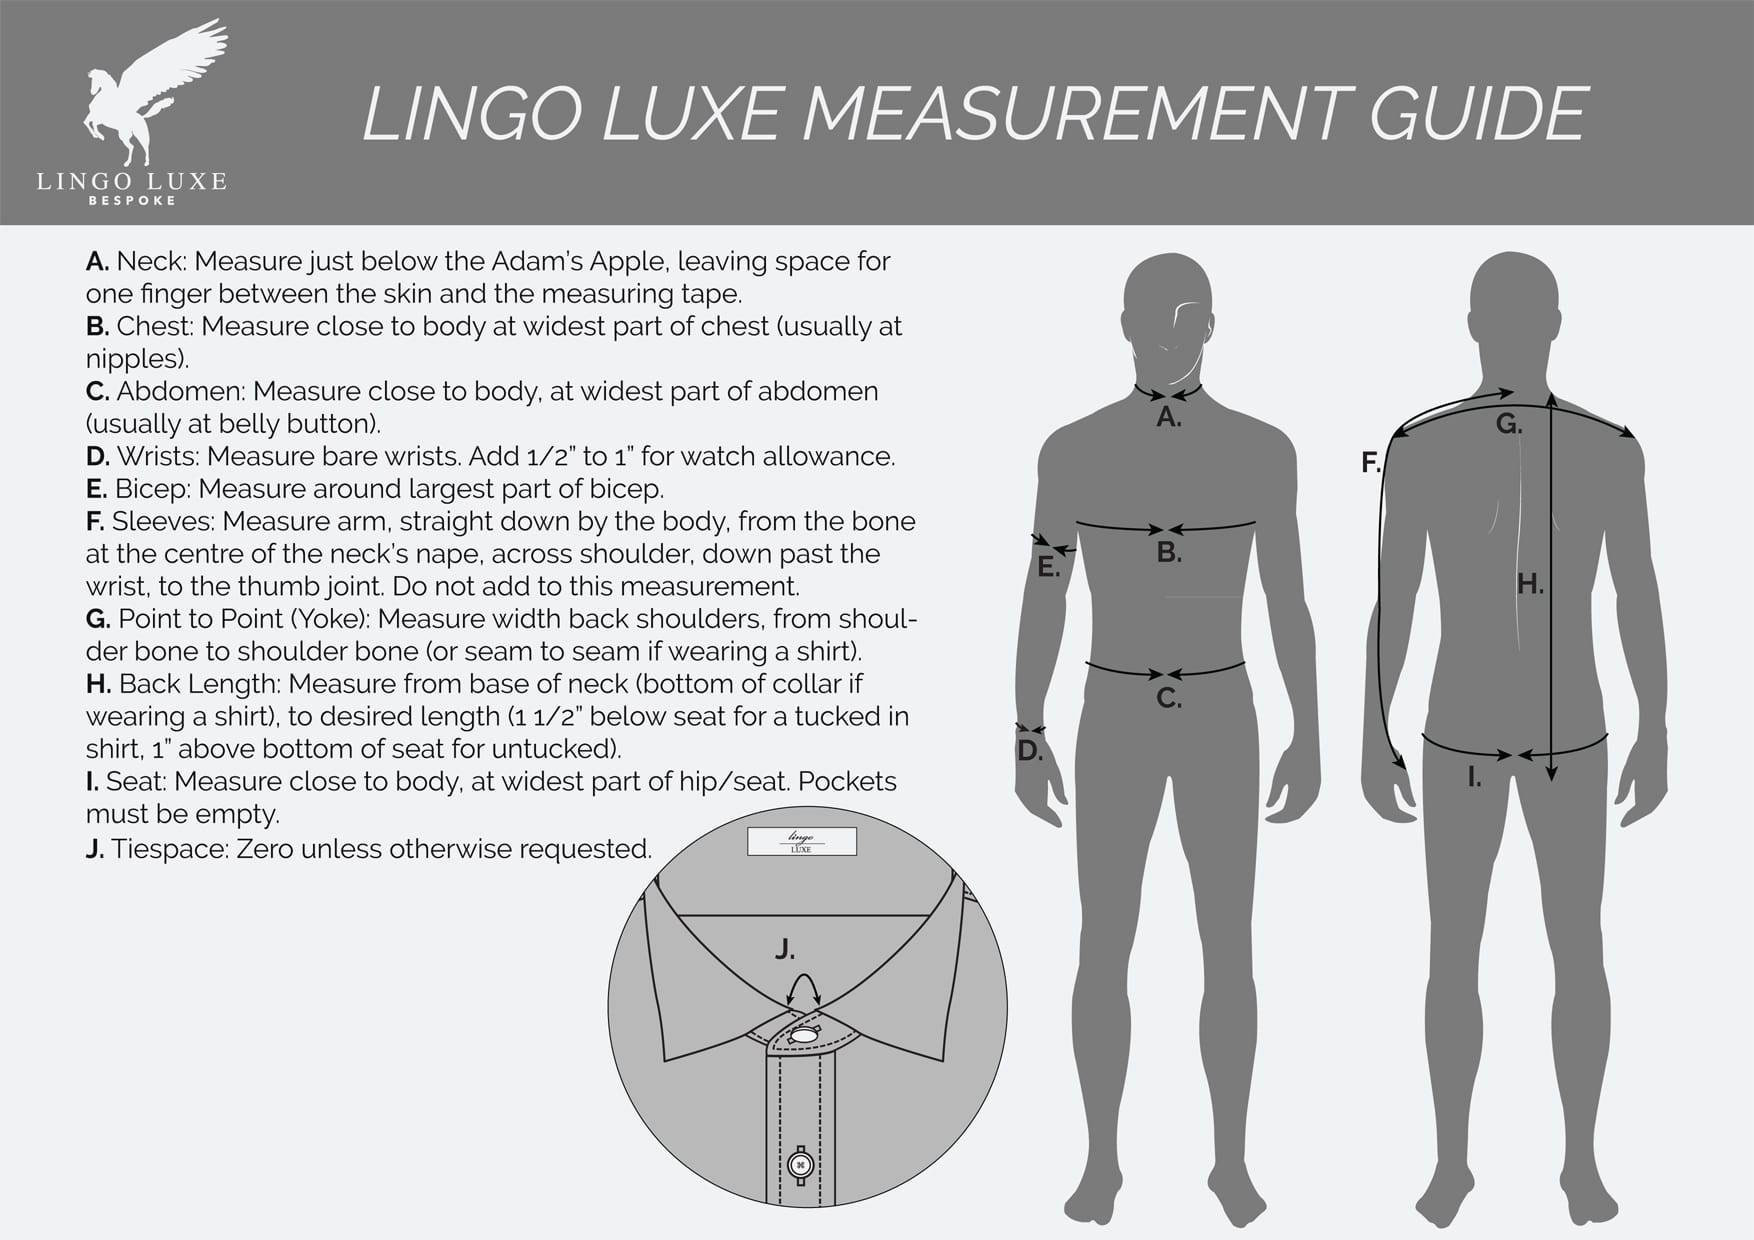 Lingo Luxe Bespoke   Measuring for a Perfect Fit